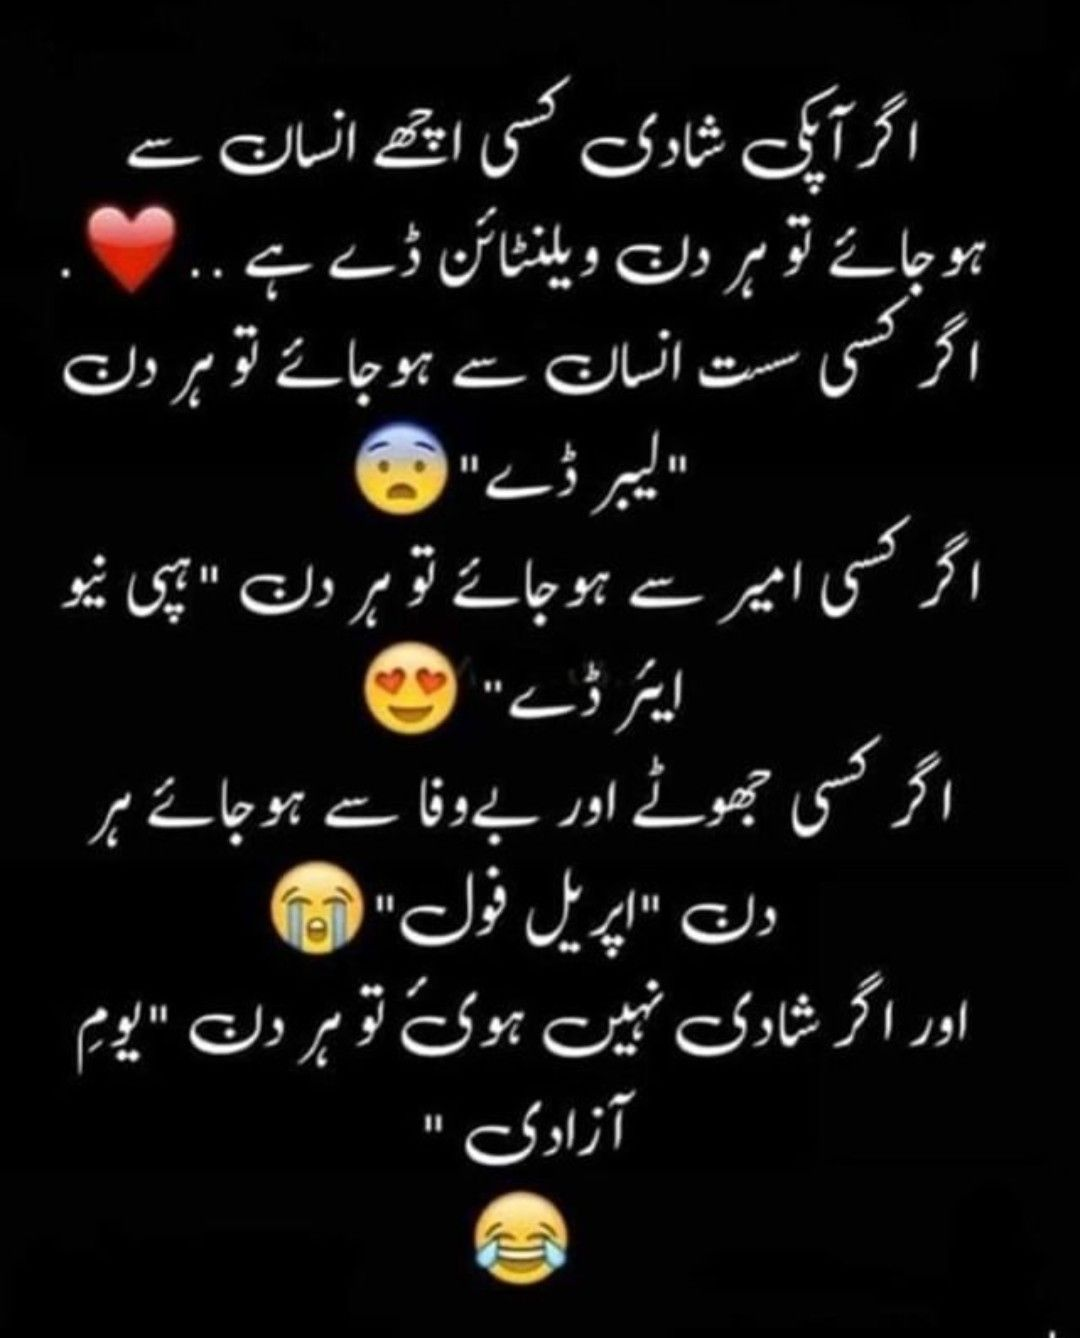 Pin On Urdu Quotes Poetry